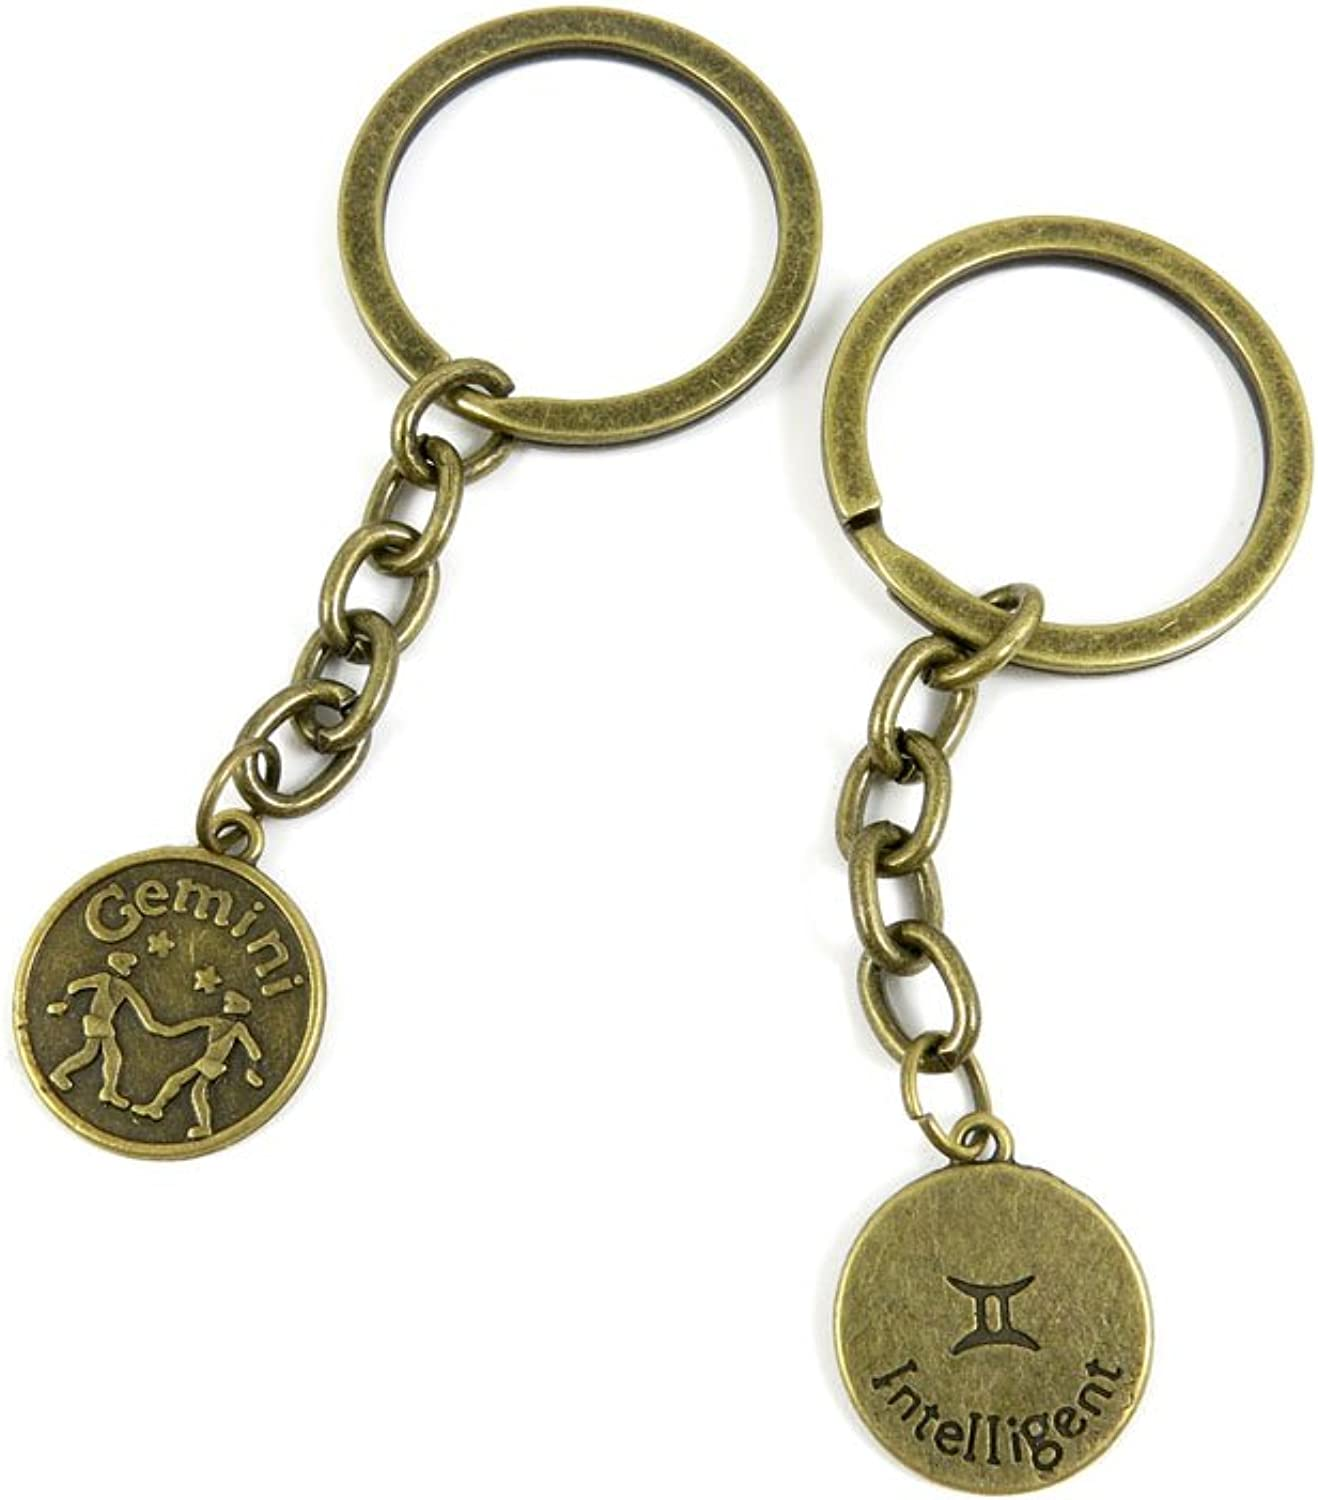 100 PCS Keyrings Keychains Key Ring Chains Tags Jewelry Findings Clasps Buckles Supplies V0NJ4 Gemini